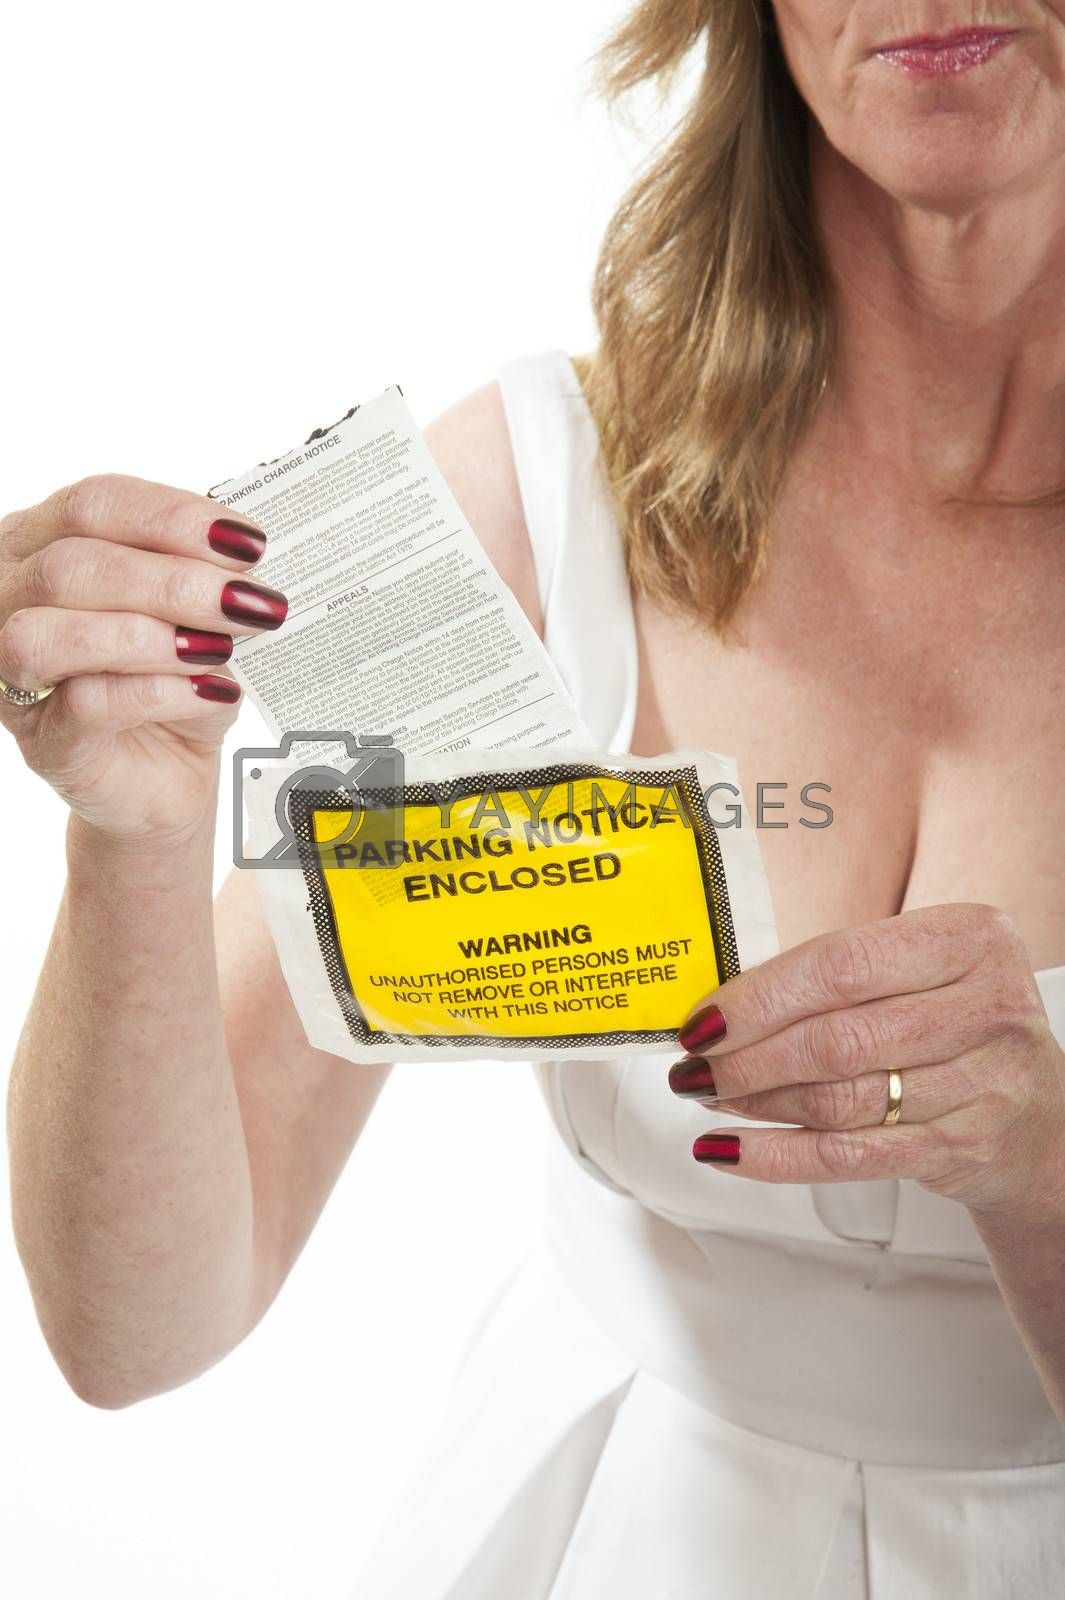 Woman reading a parking charge notice